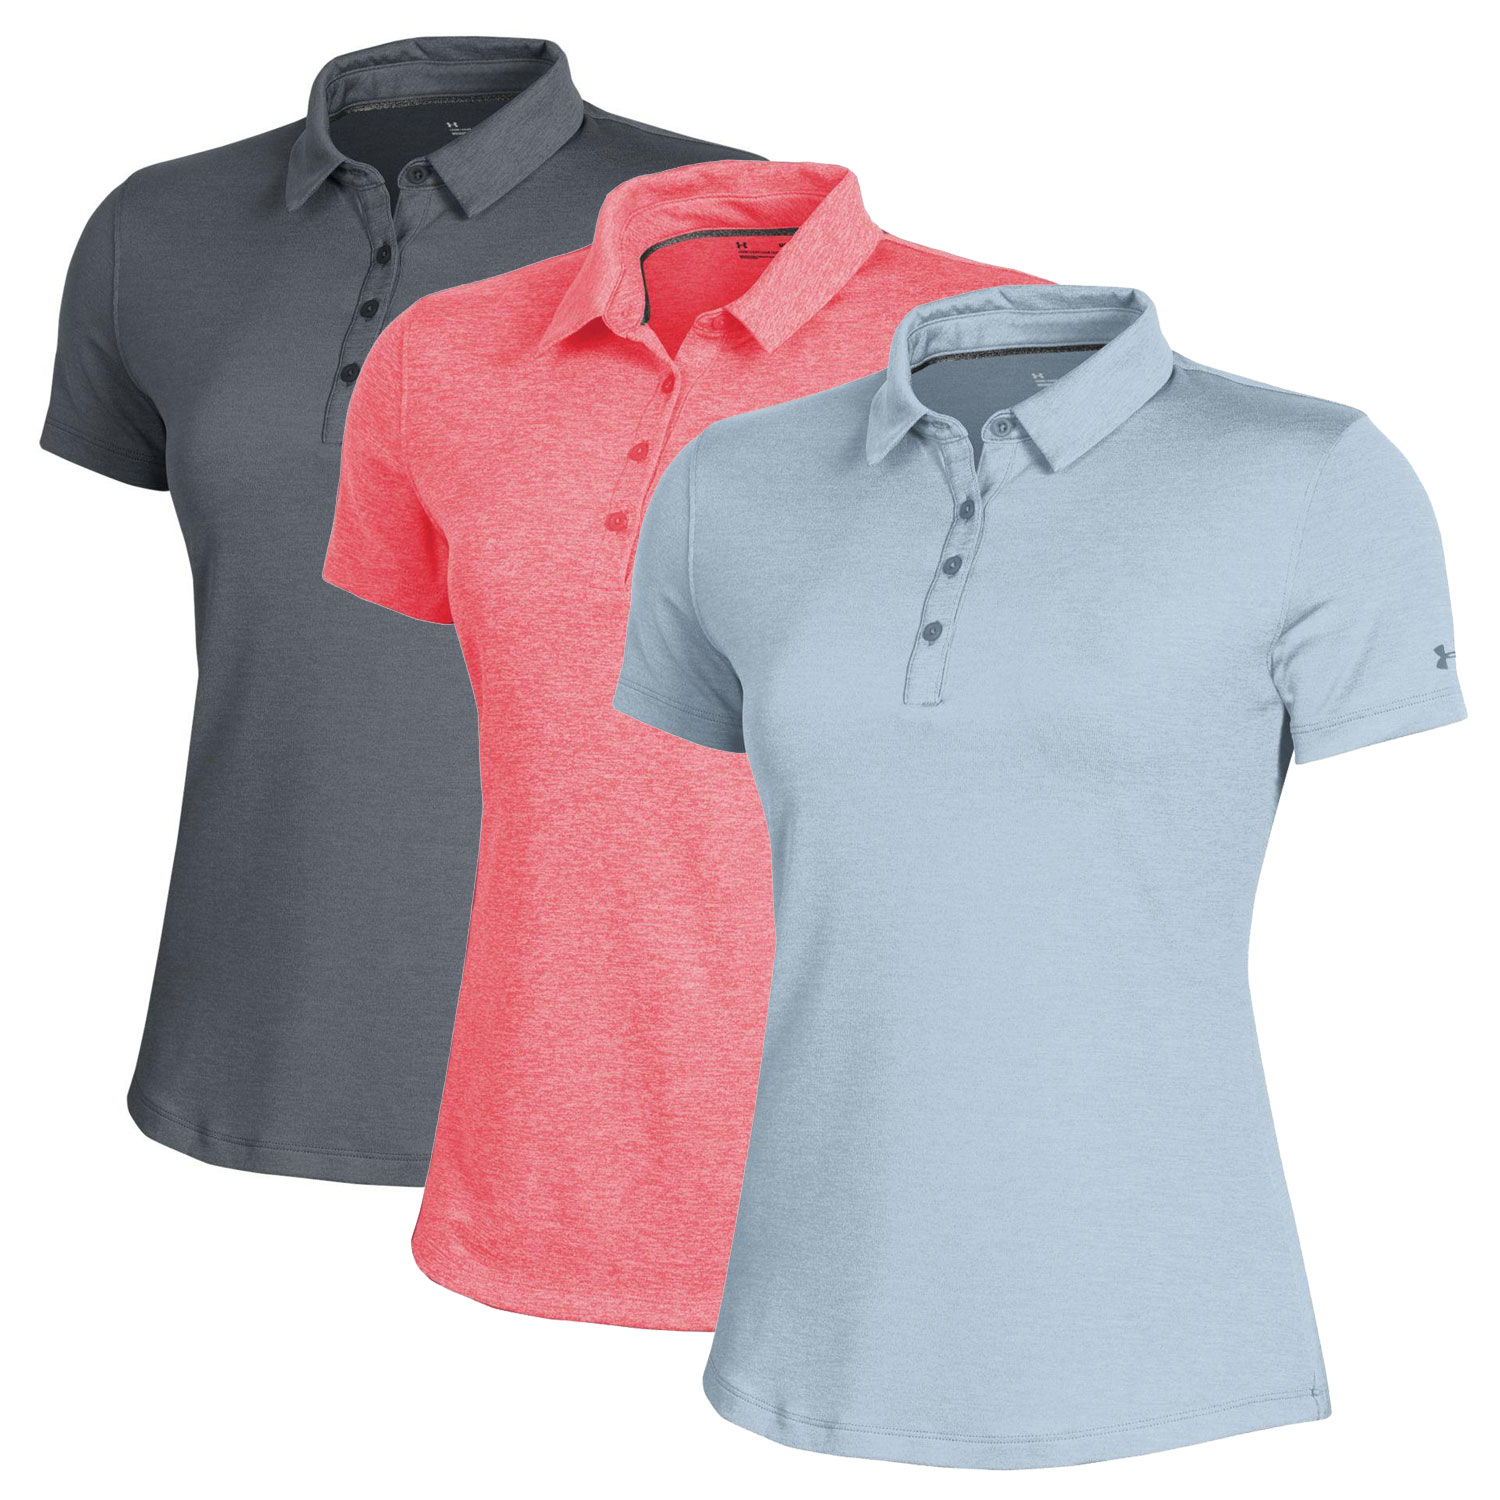 Under Armour Women's 2019 Zinger 2.0 Heather Polo